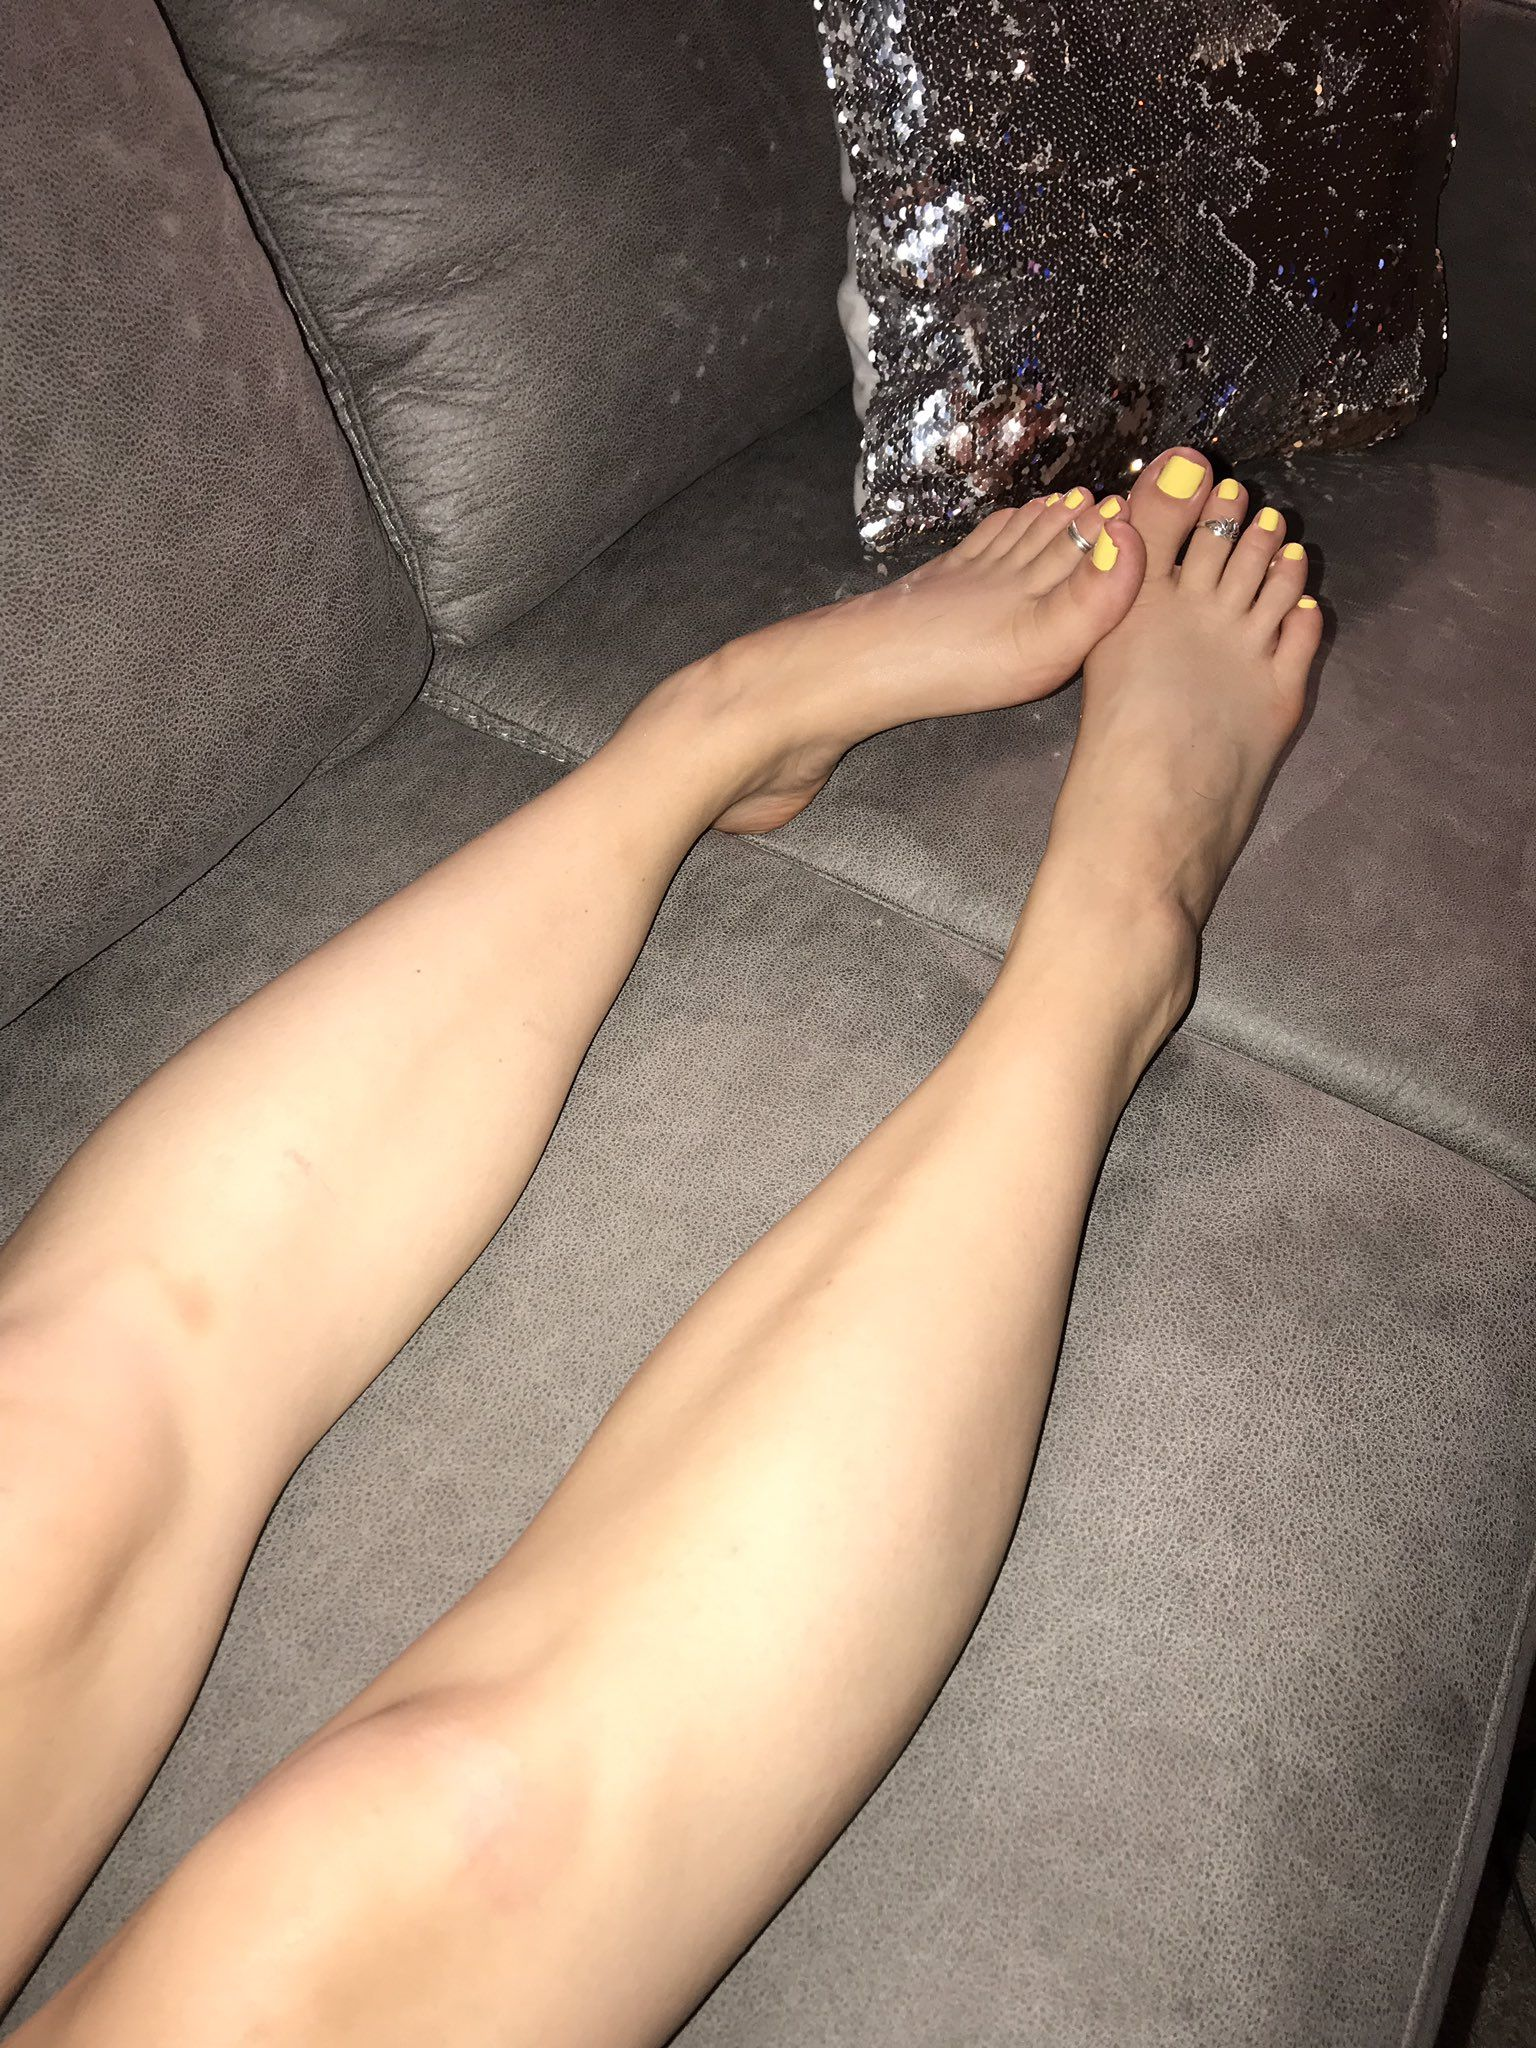 Pin on Womens legs and feet